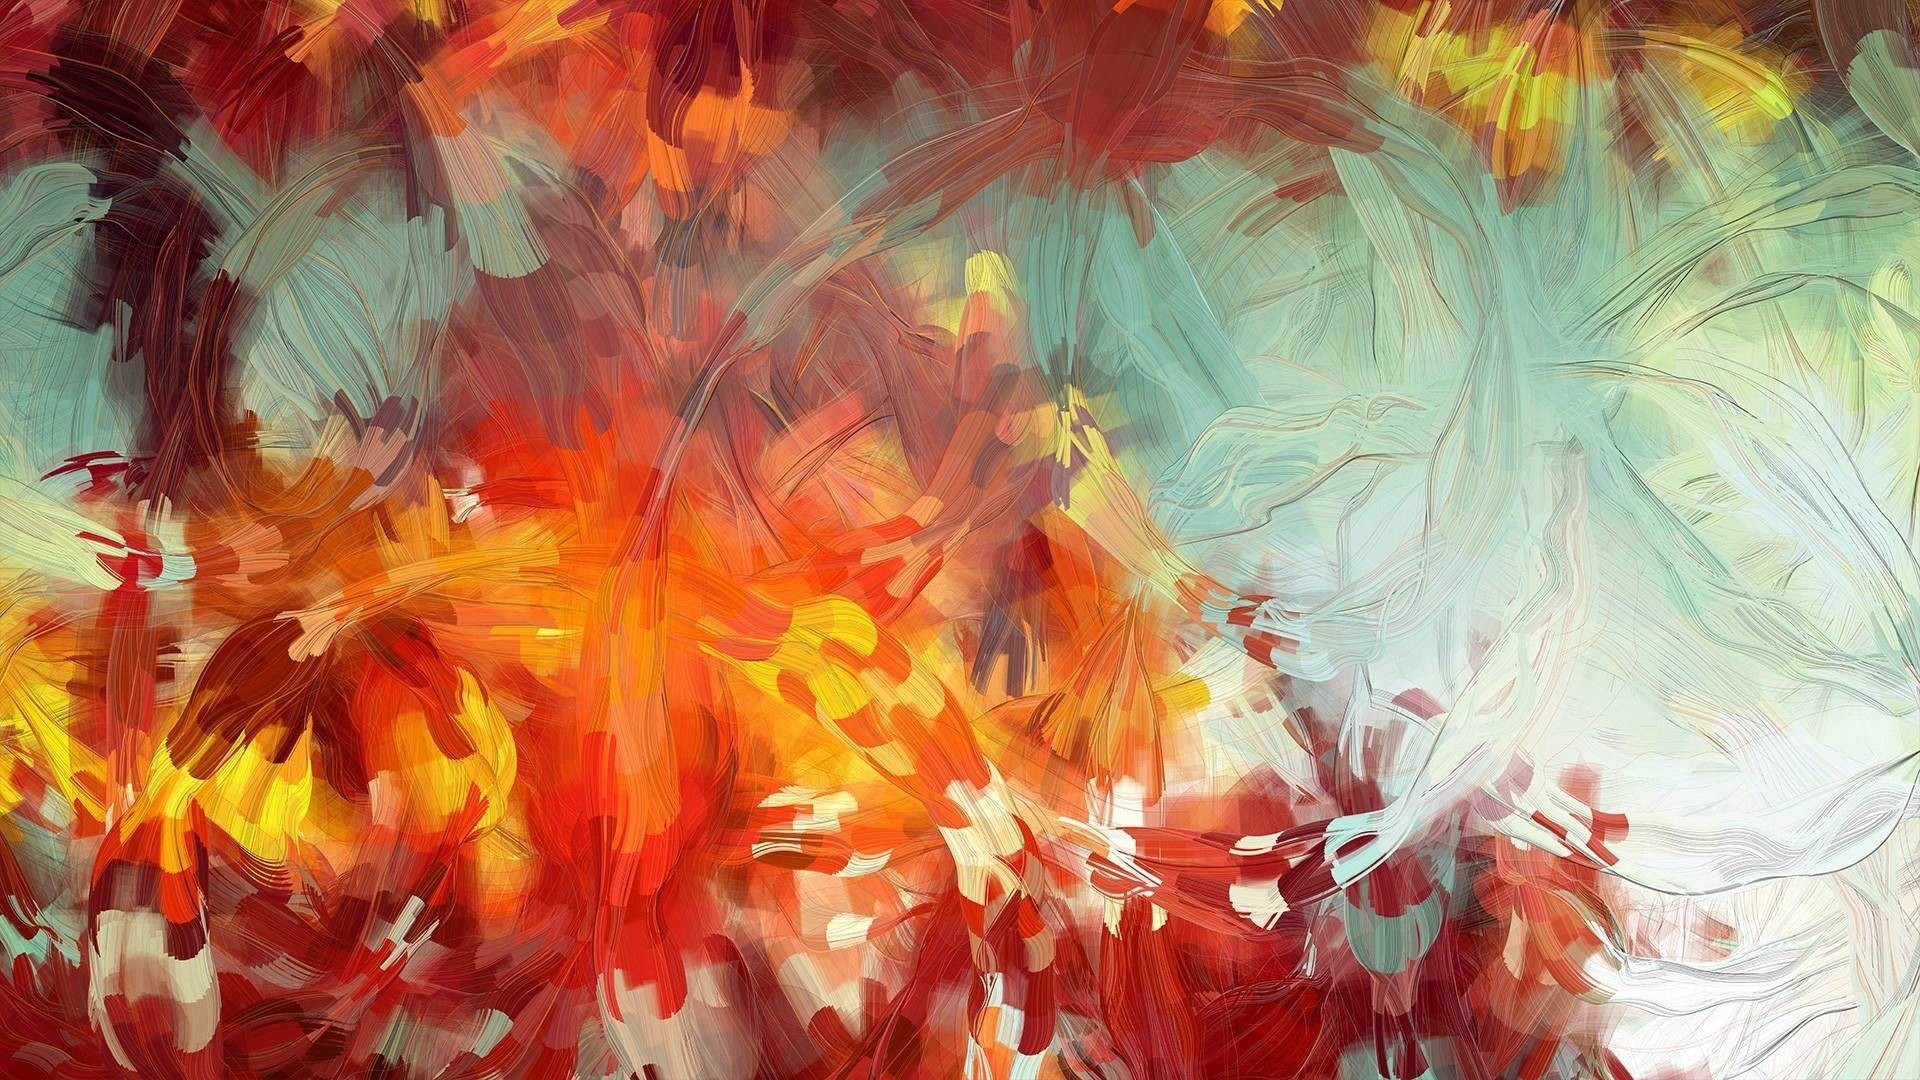 Abstract Paintings 1920×1080 Wallpaper 2174723